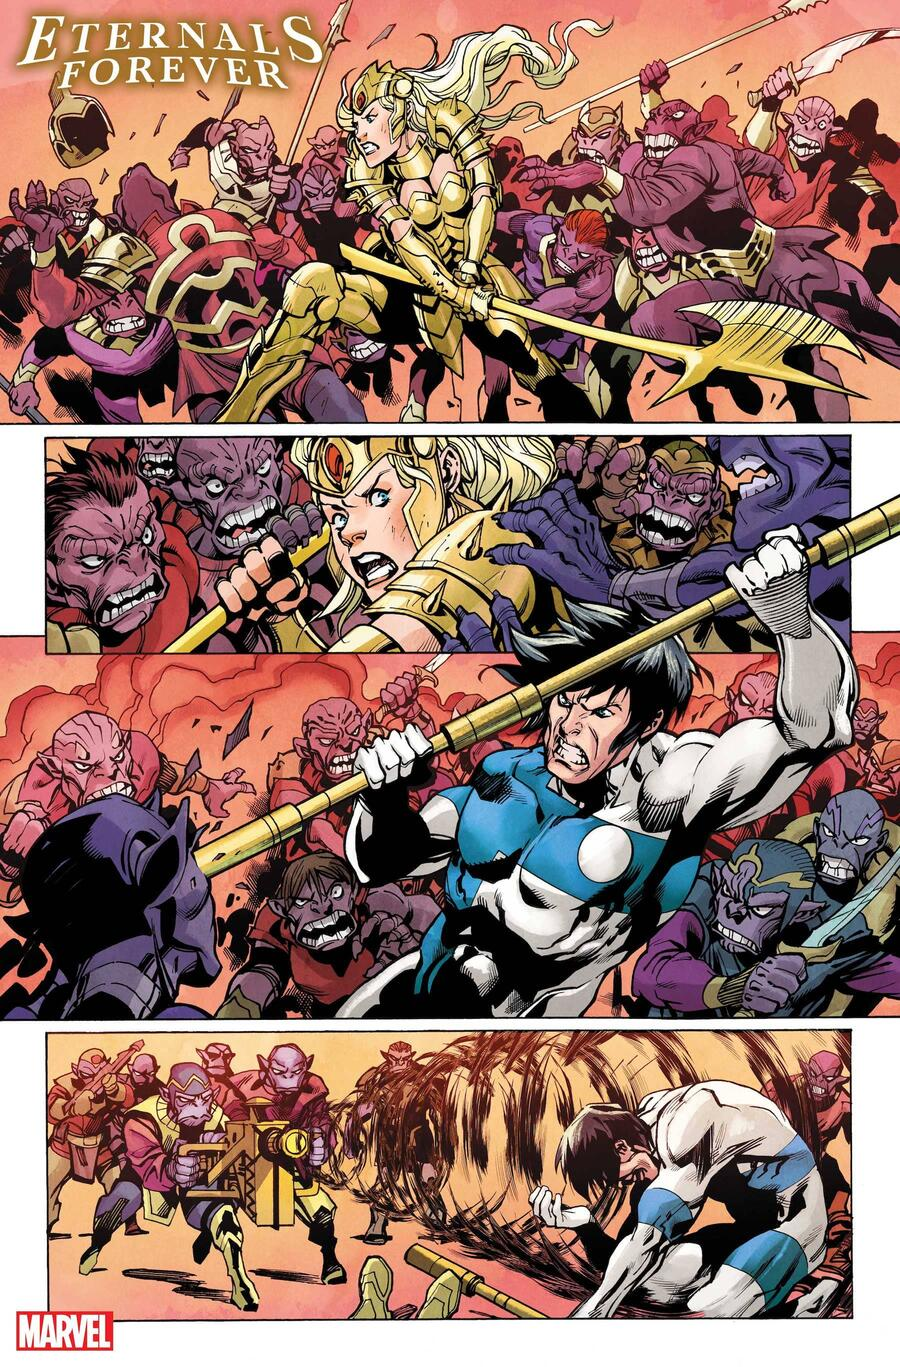 ETERNALS FOREVER #1 preview art by Ramon Bachs with colors by Rachelle Rosenberg